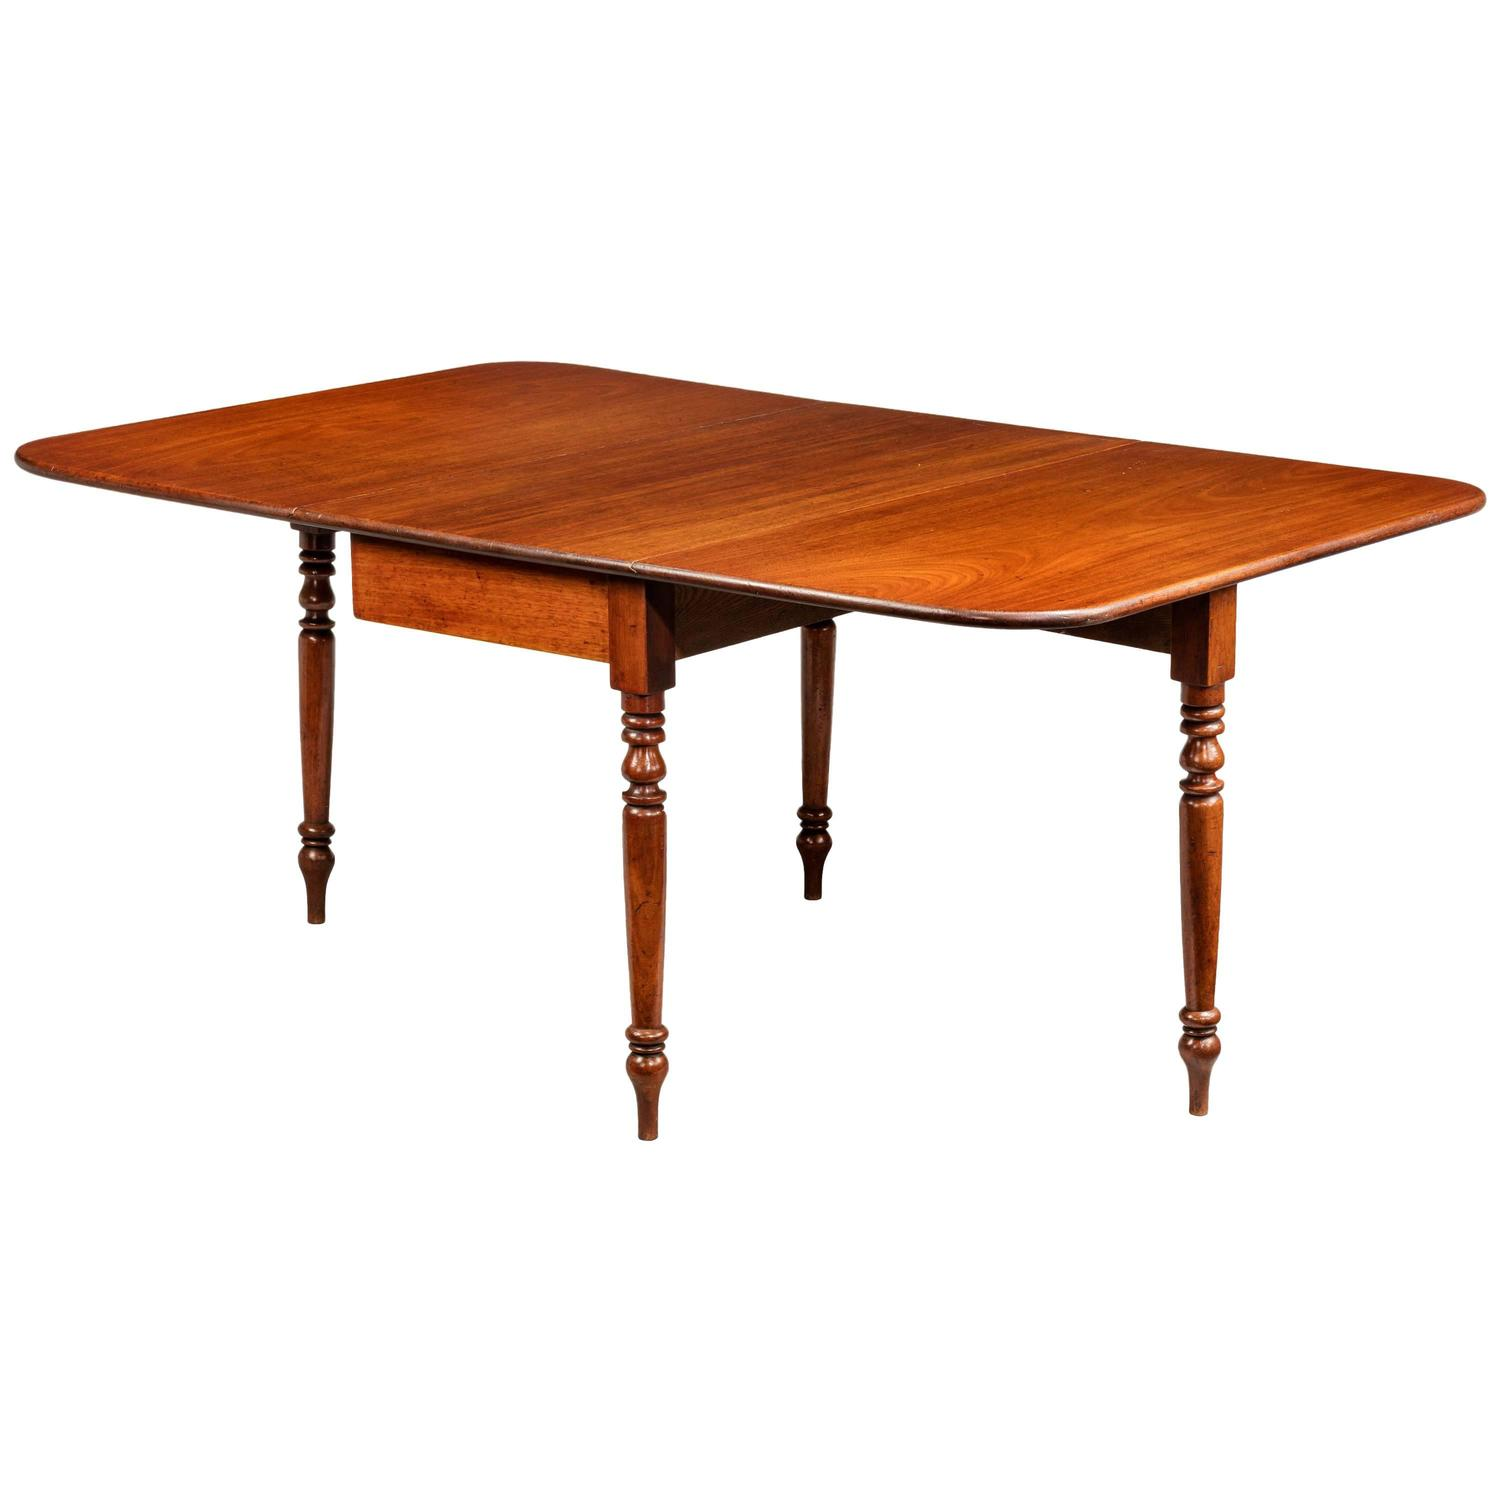 Regency period drop leaf dining table for sale at 1stdibs for Dining room tables drop leaf